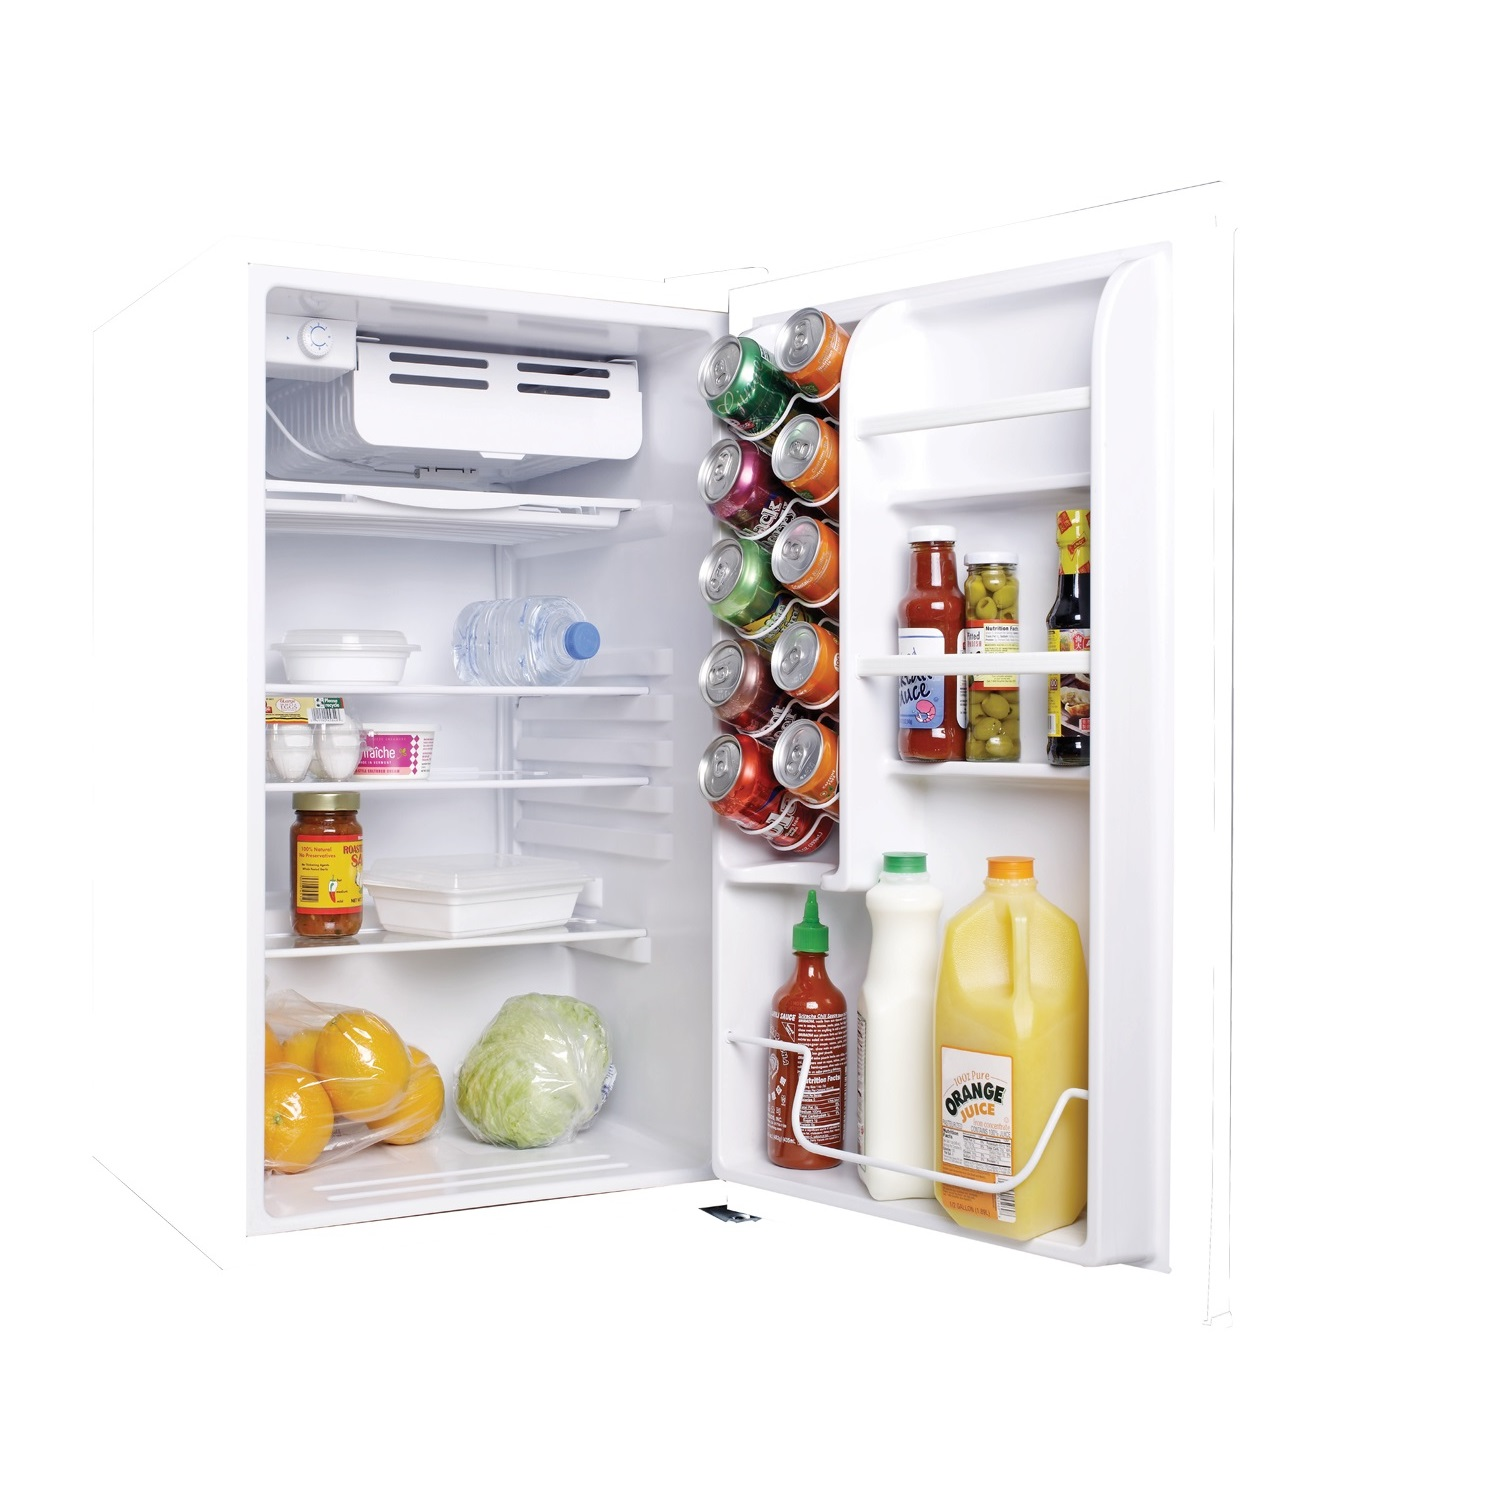 Haier pact Refrigerator with Half Width Freezer partment